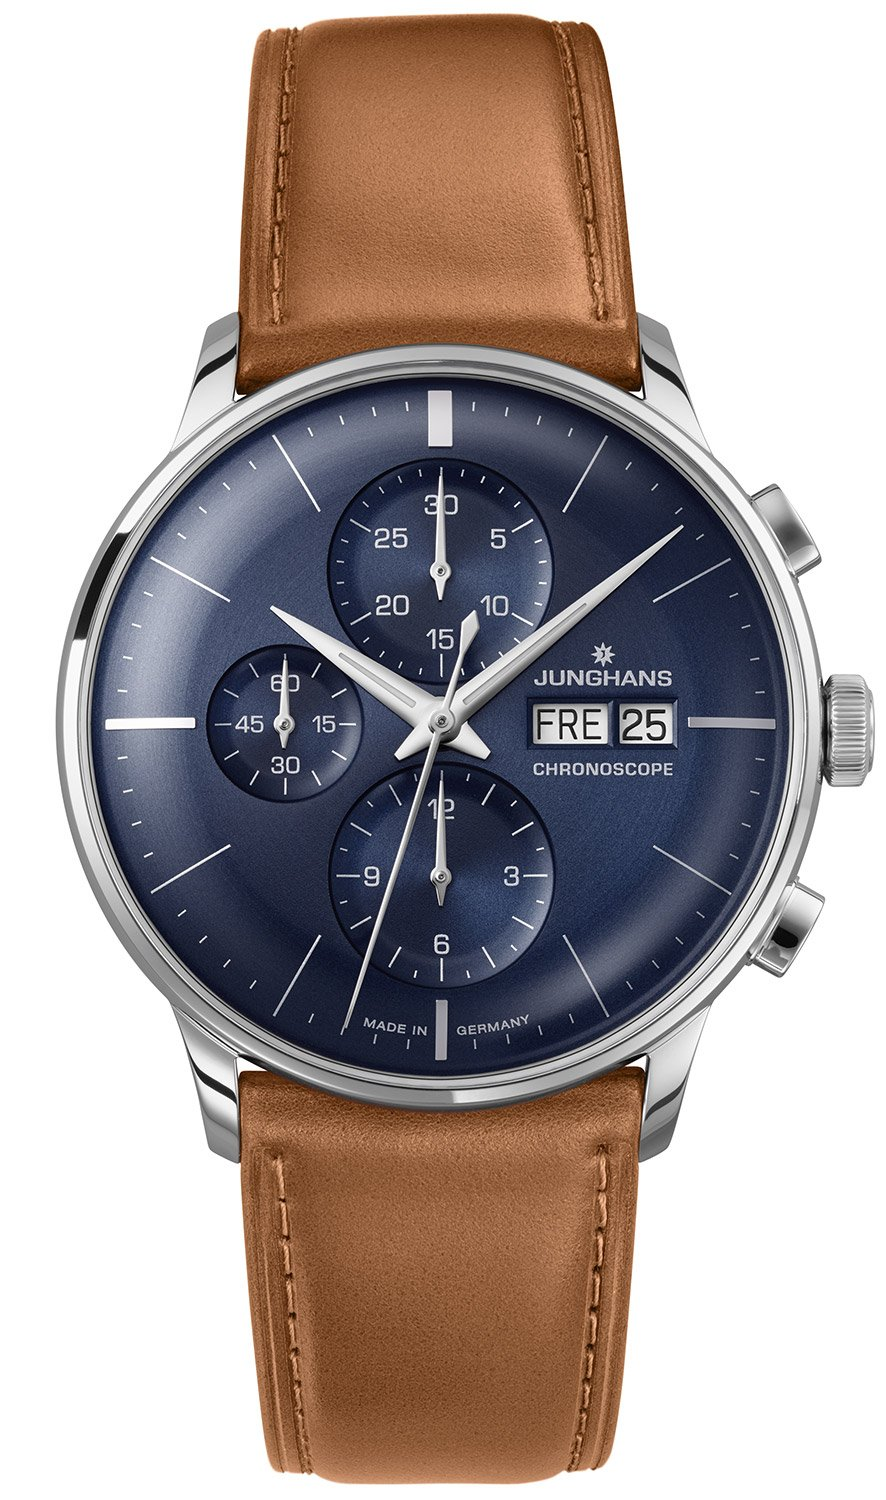 junghans meister chronoscope uhren uhrcenter uhren shop. Black Bedroom Furniture Sets. Home Design Ideas